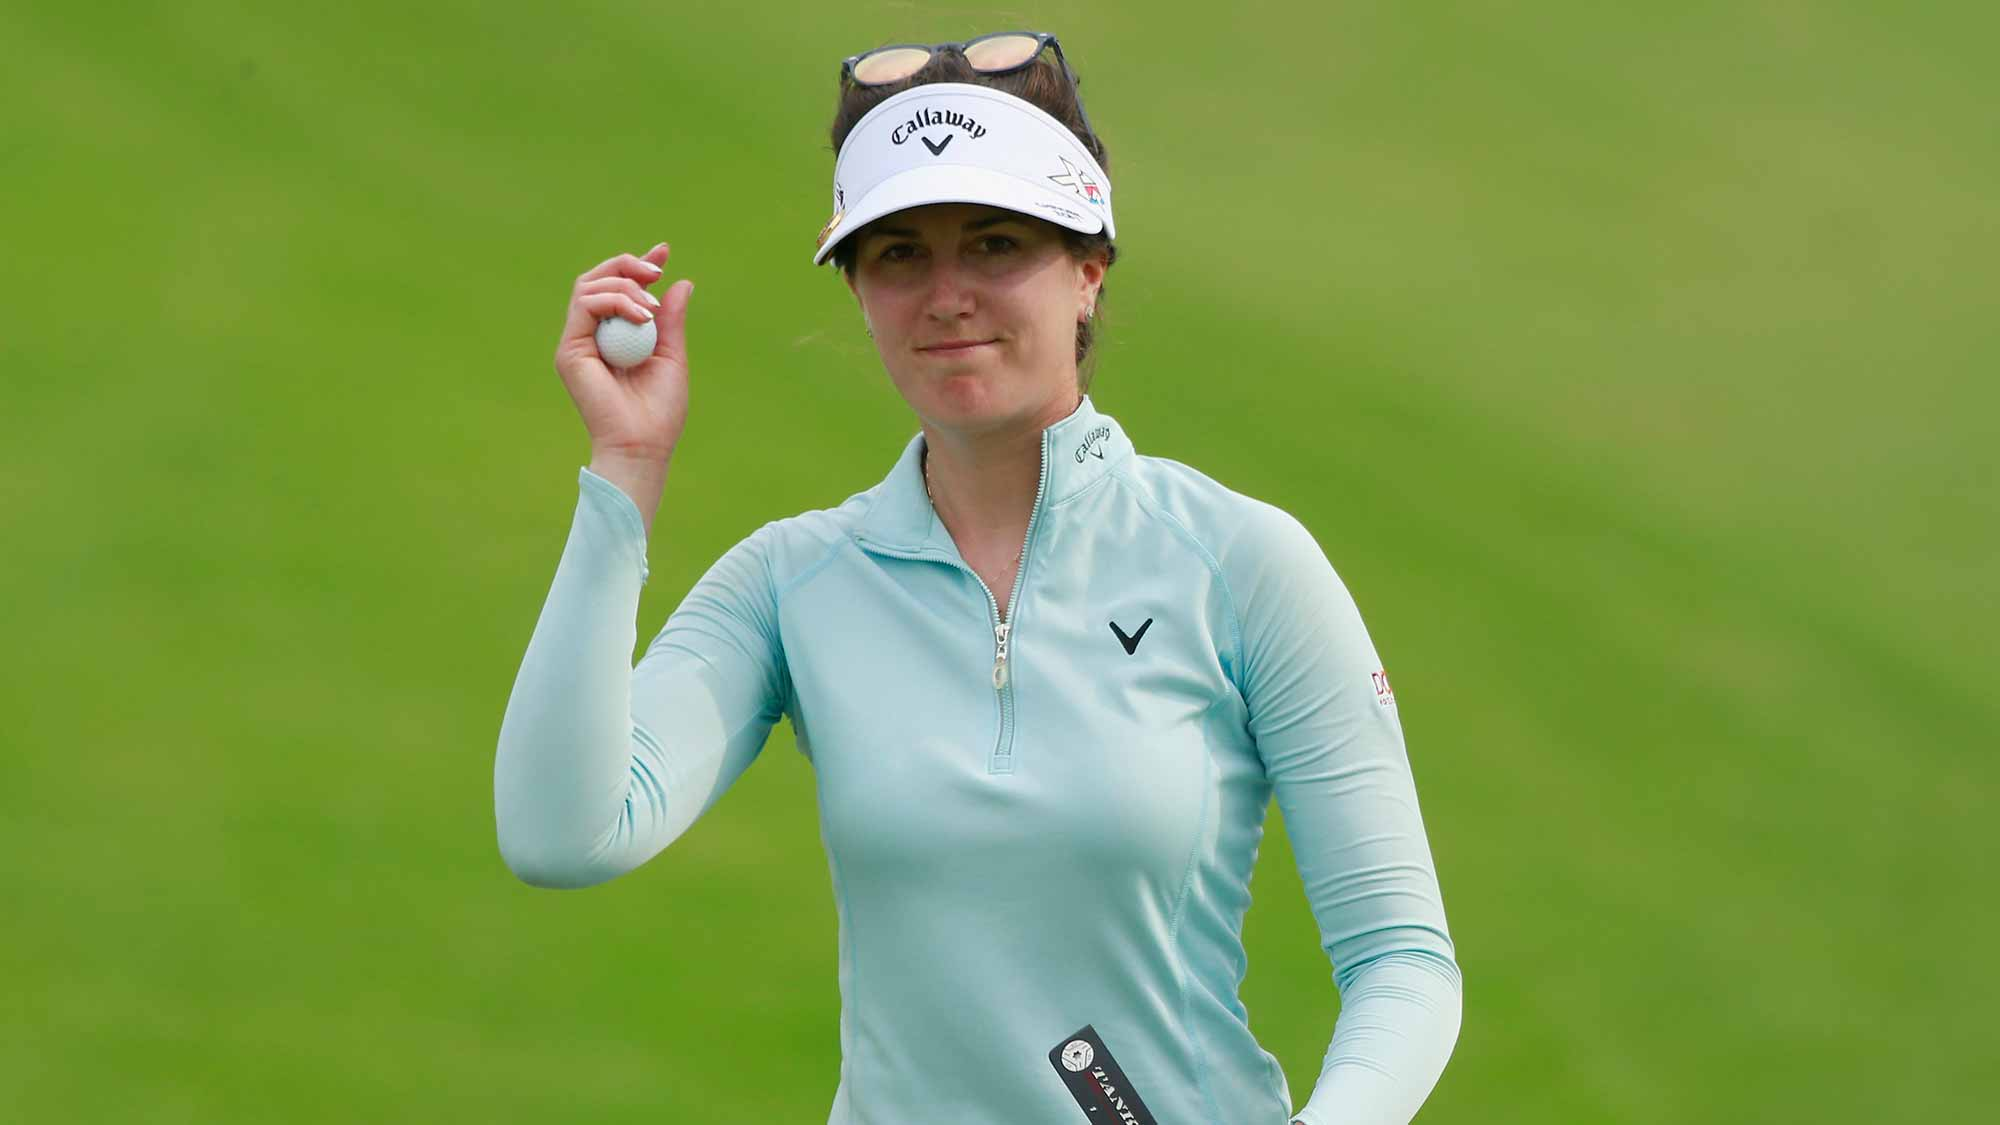 Sandra Gal of Germany reacts at the 18th hole during Round 2 of Blue Bay LPGA